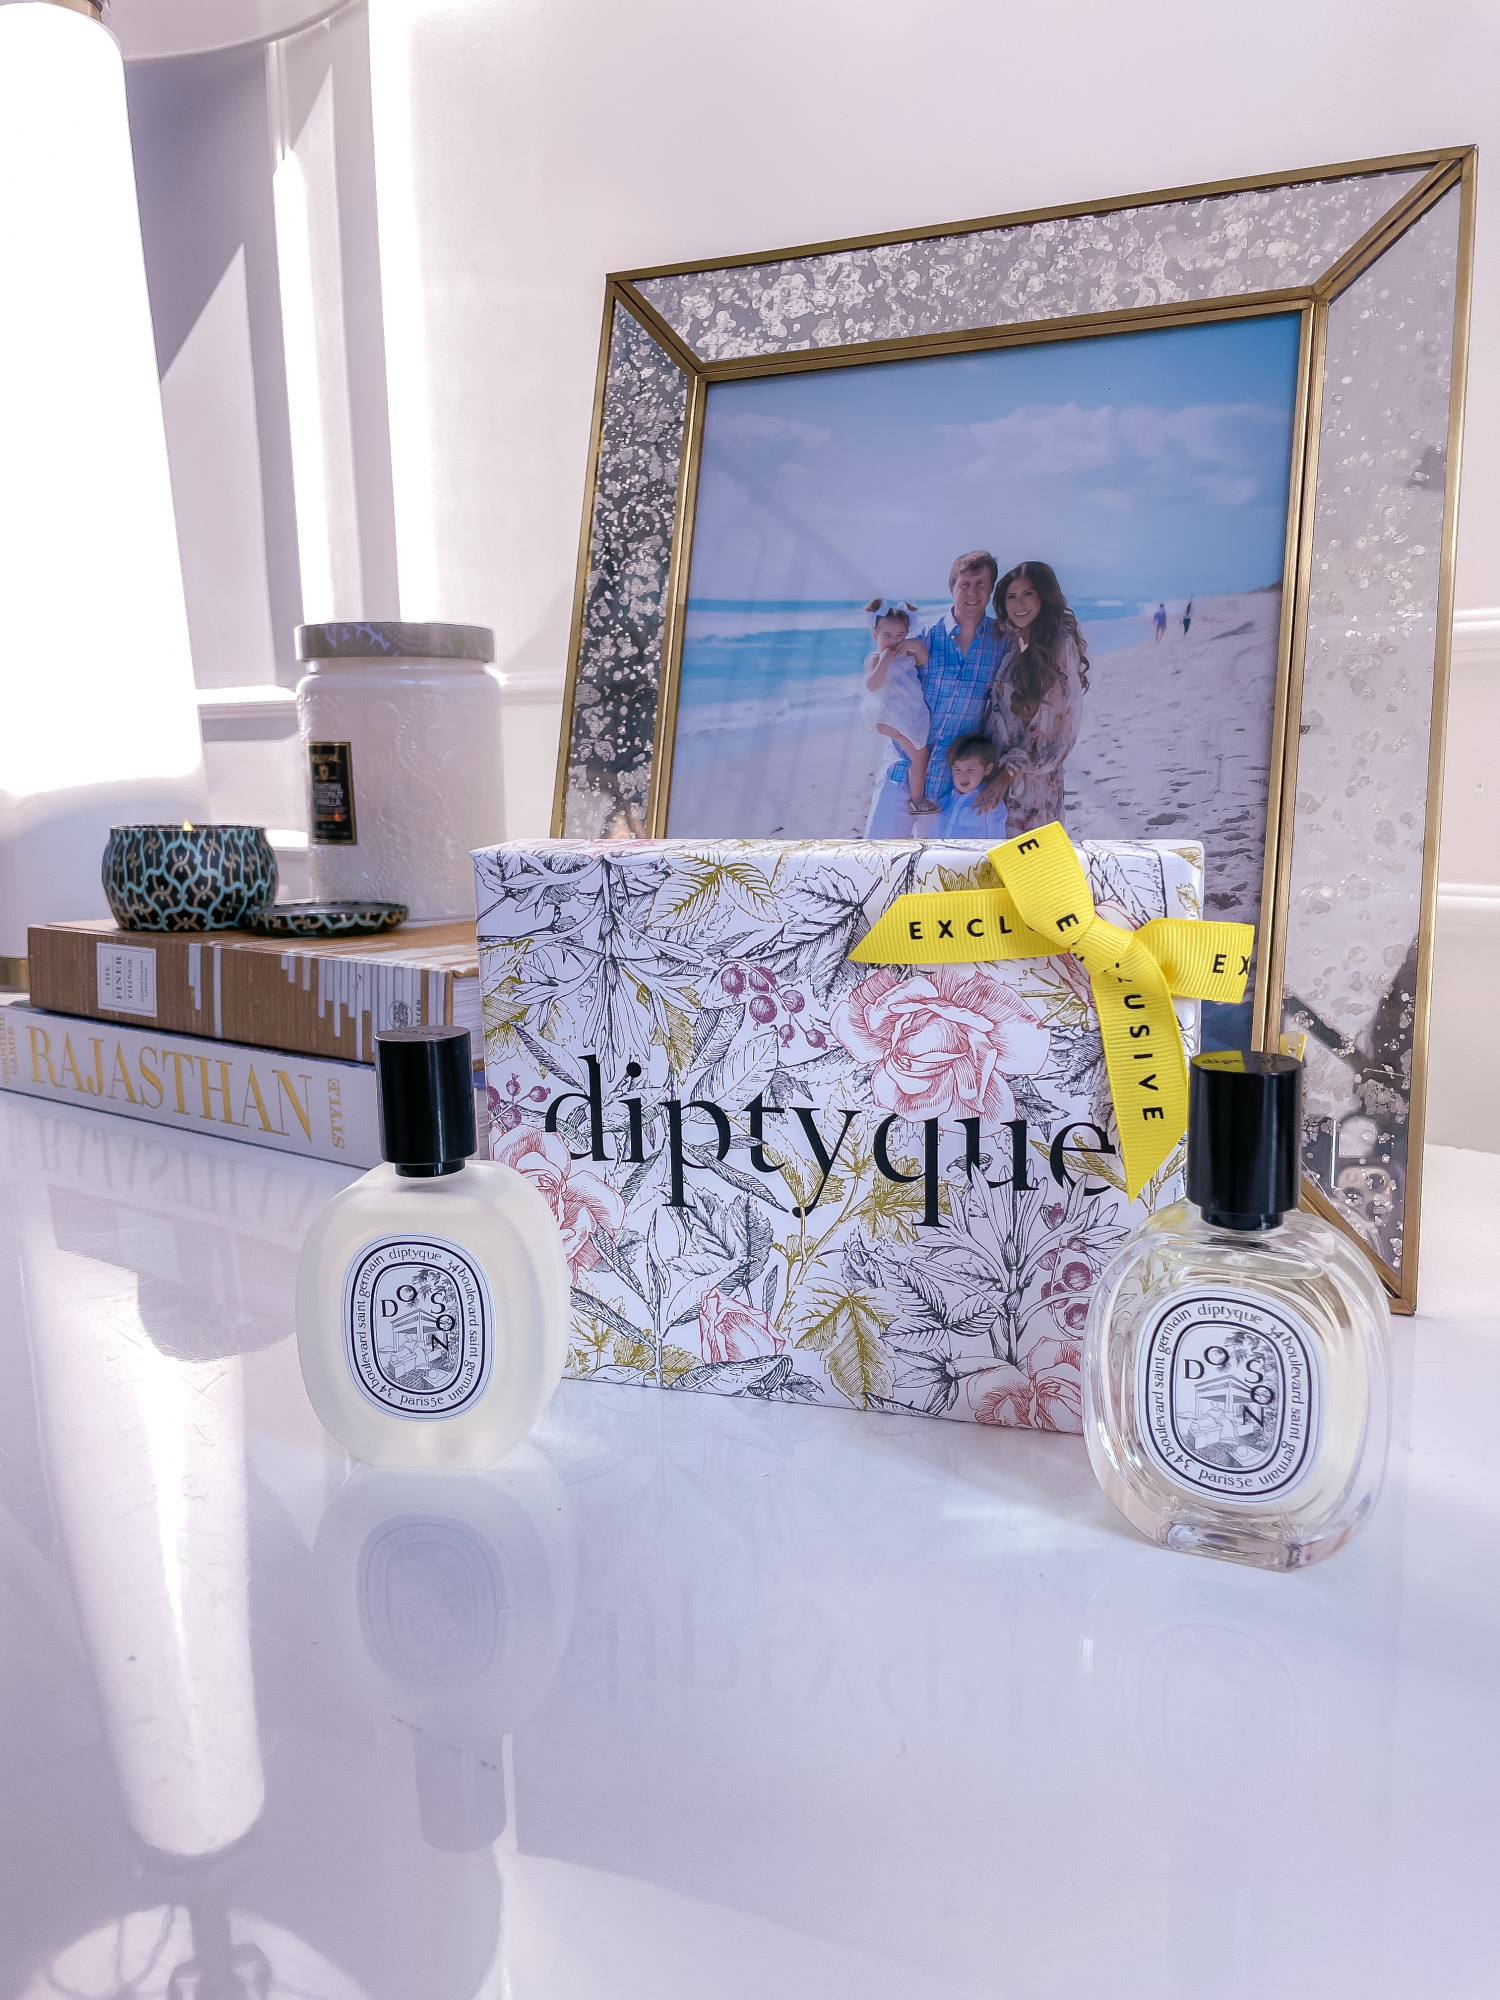 Nordstrom Anniversary Sale by popular US fashion blog, The Sweetest Thing: image of Dipty Que spray set.